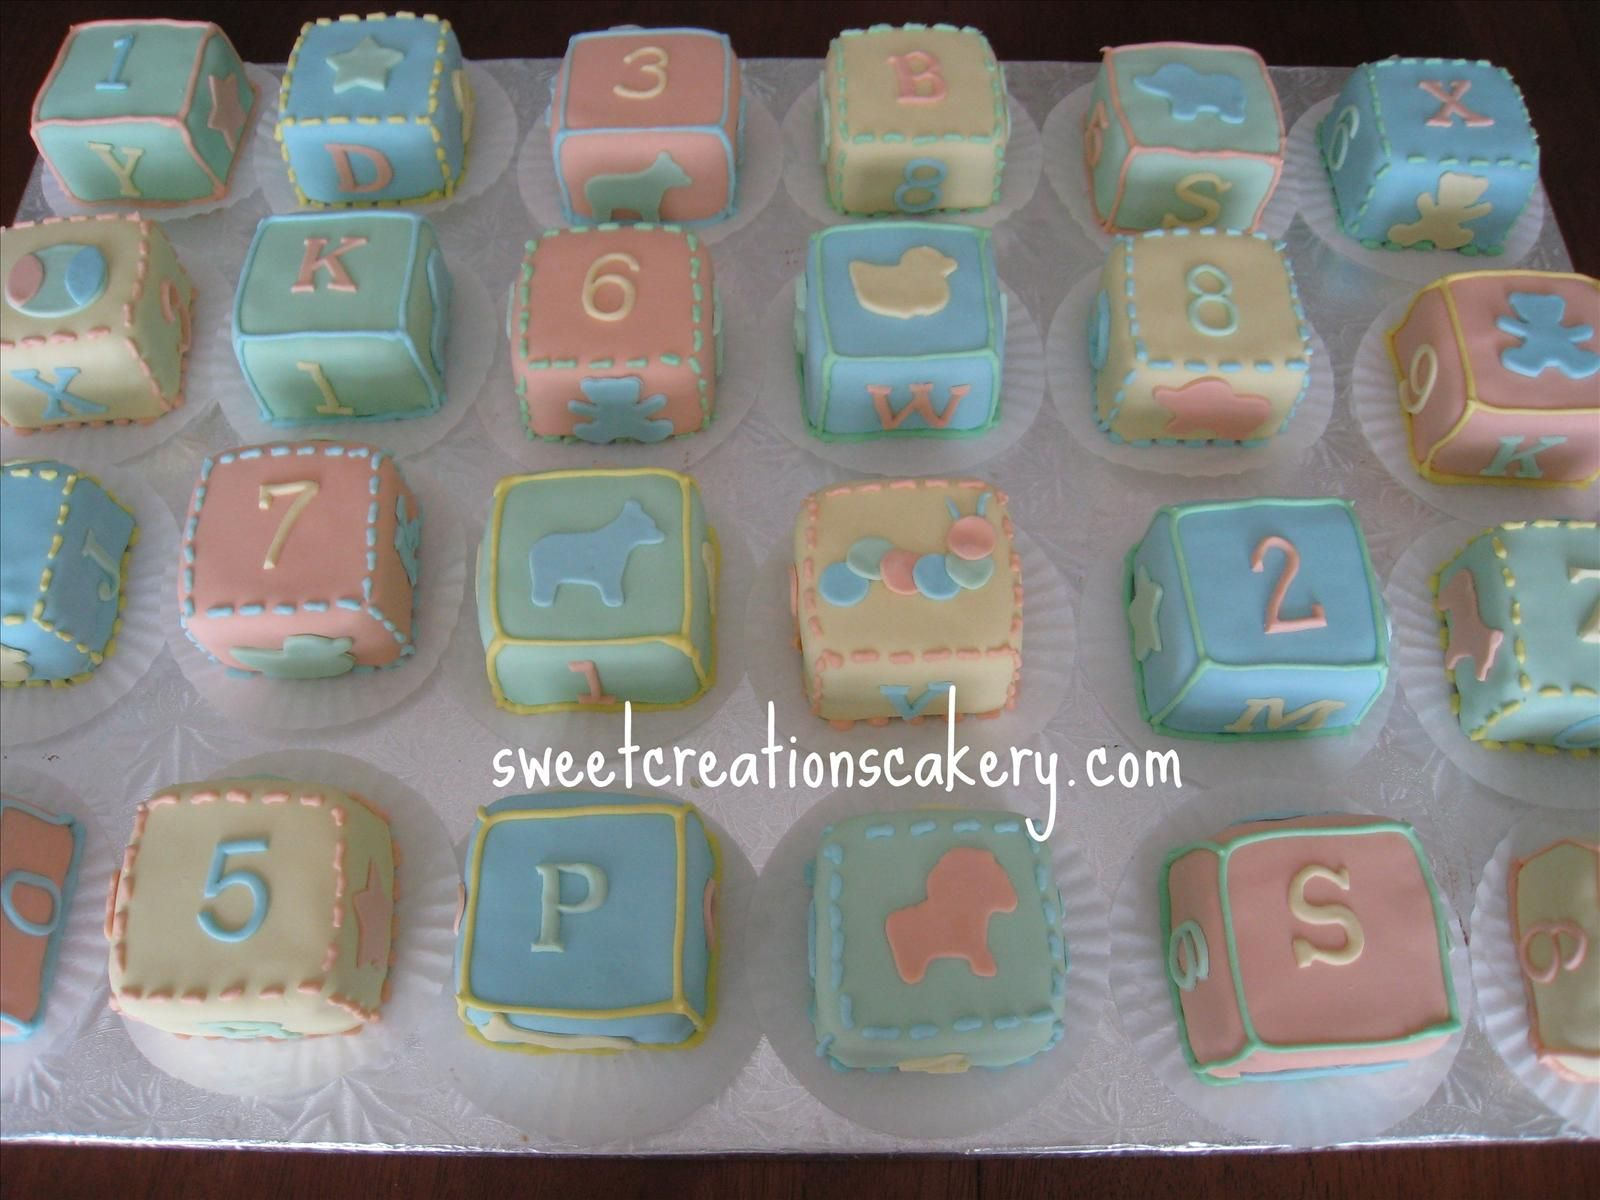 Baby Shaped Cake Images : baby block shaped cupcakes and cake for baby shower ...